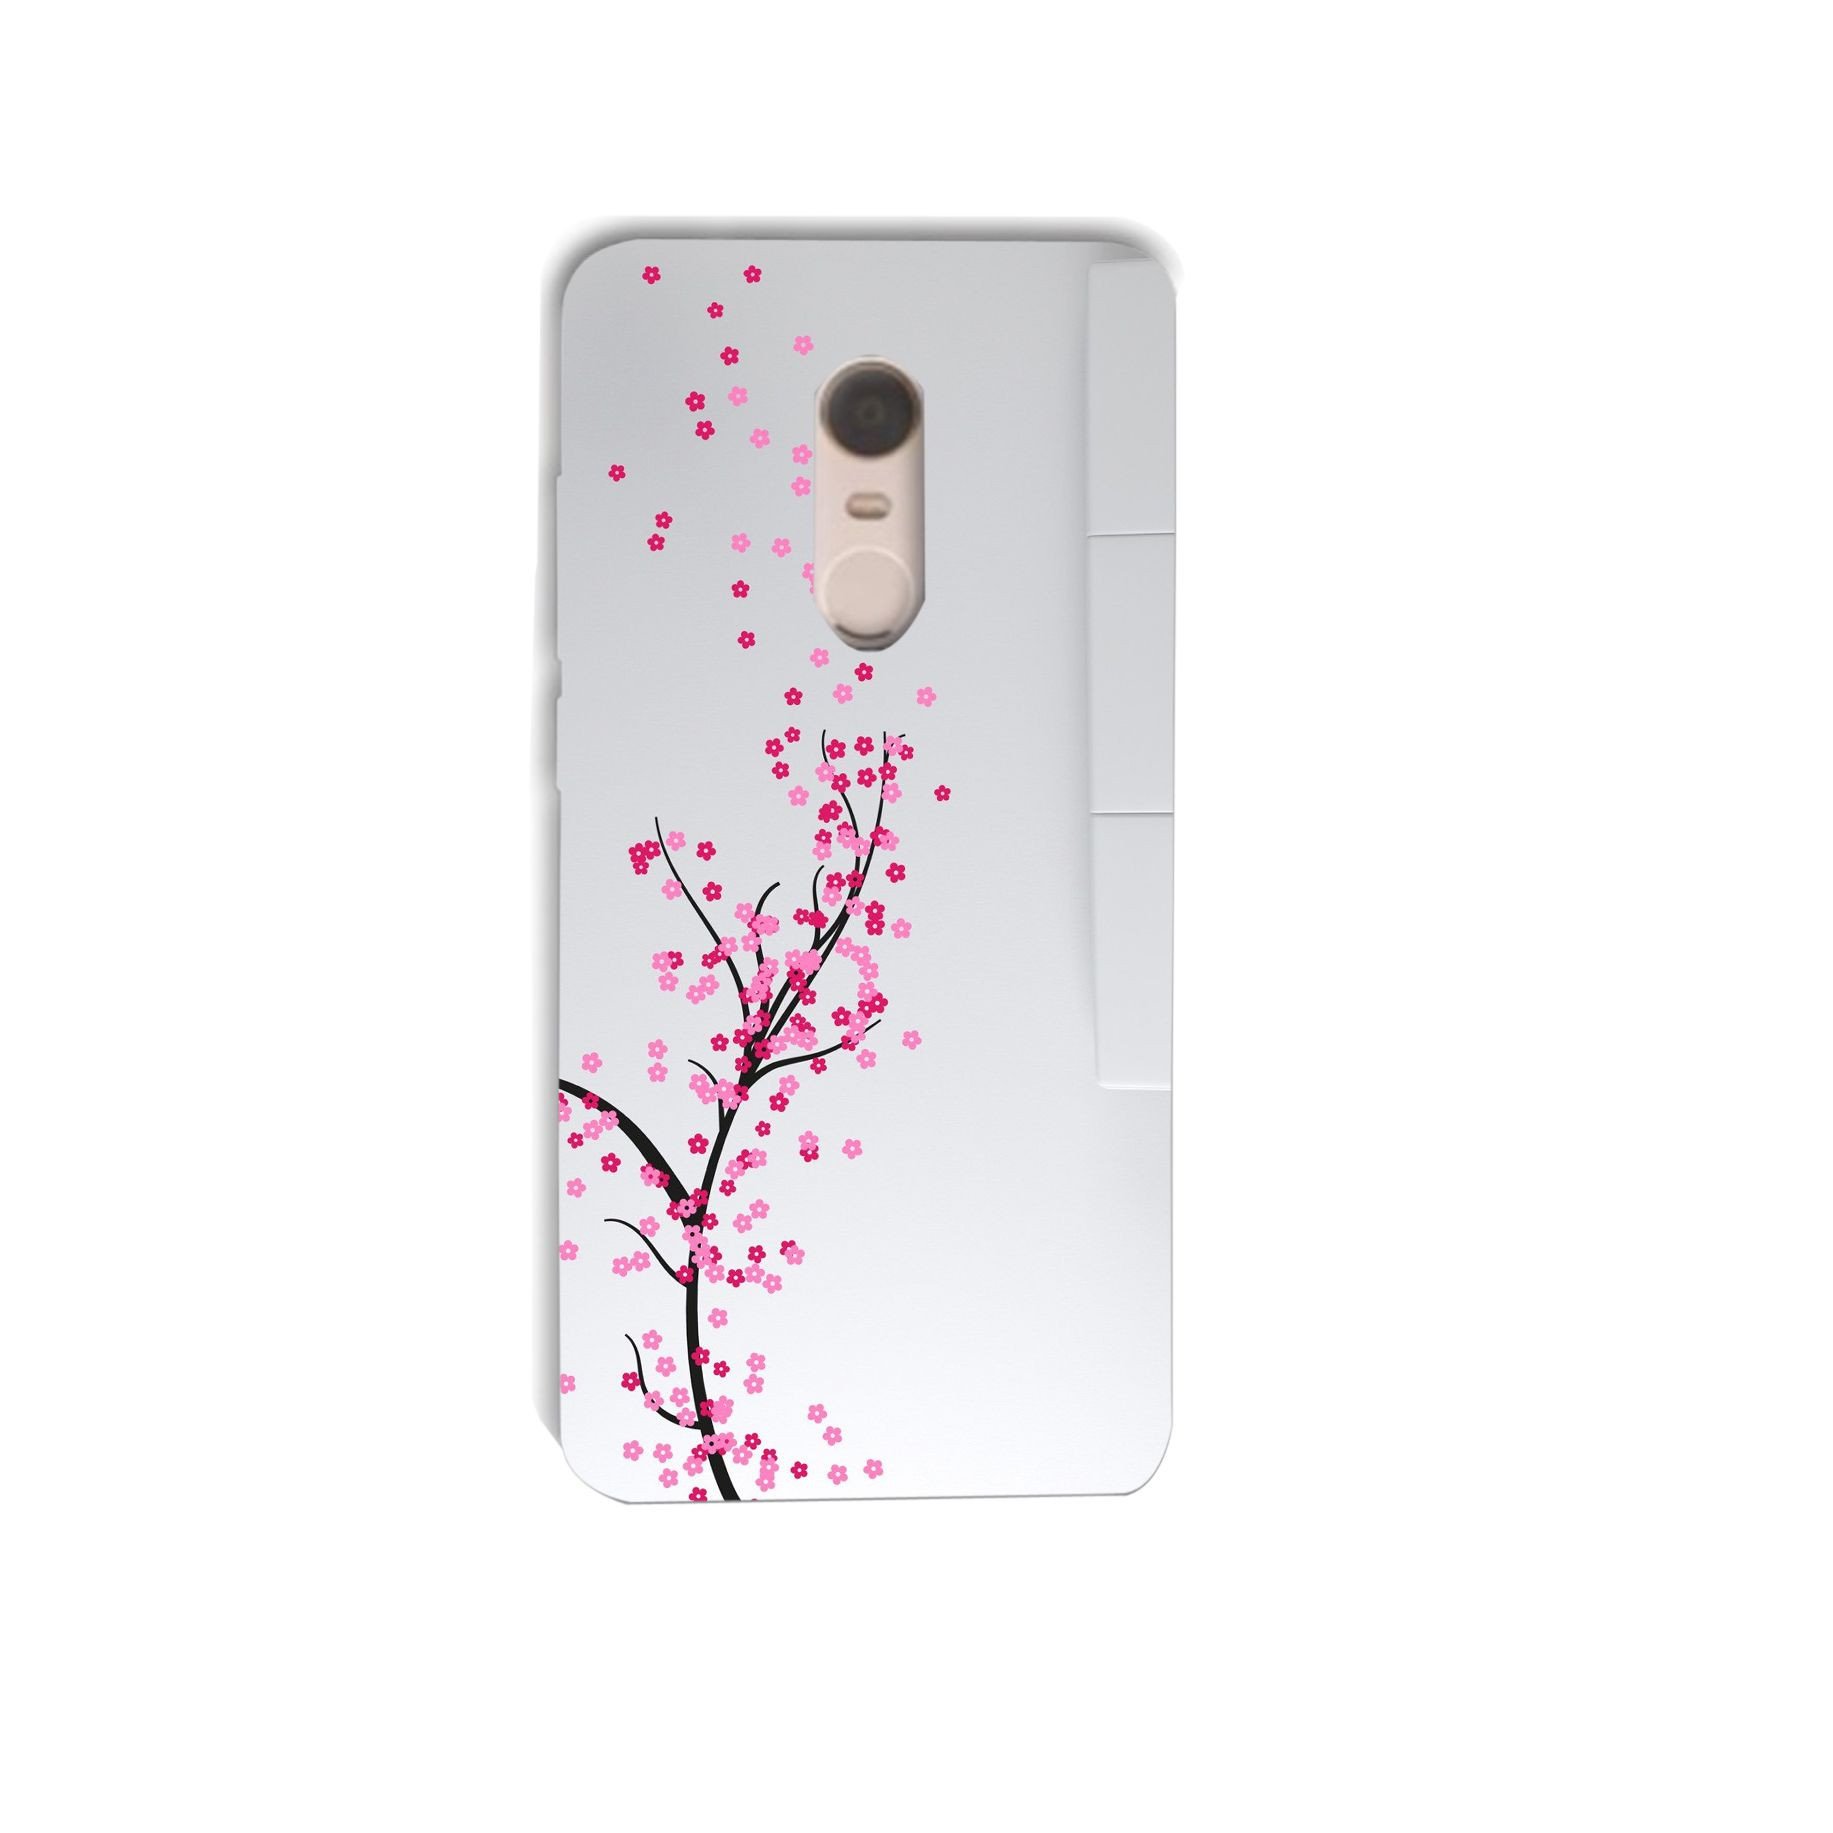 REDMI NOTE 5 Printed Cover By SHOPTICO